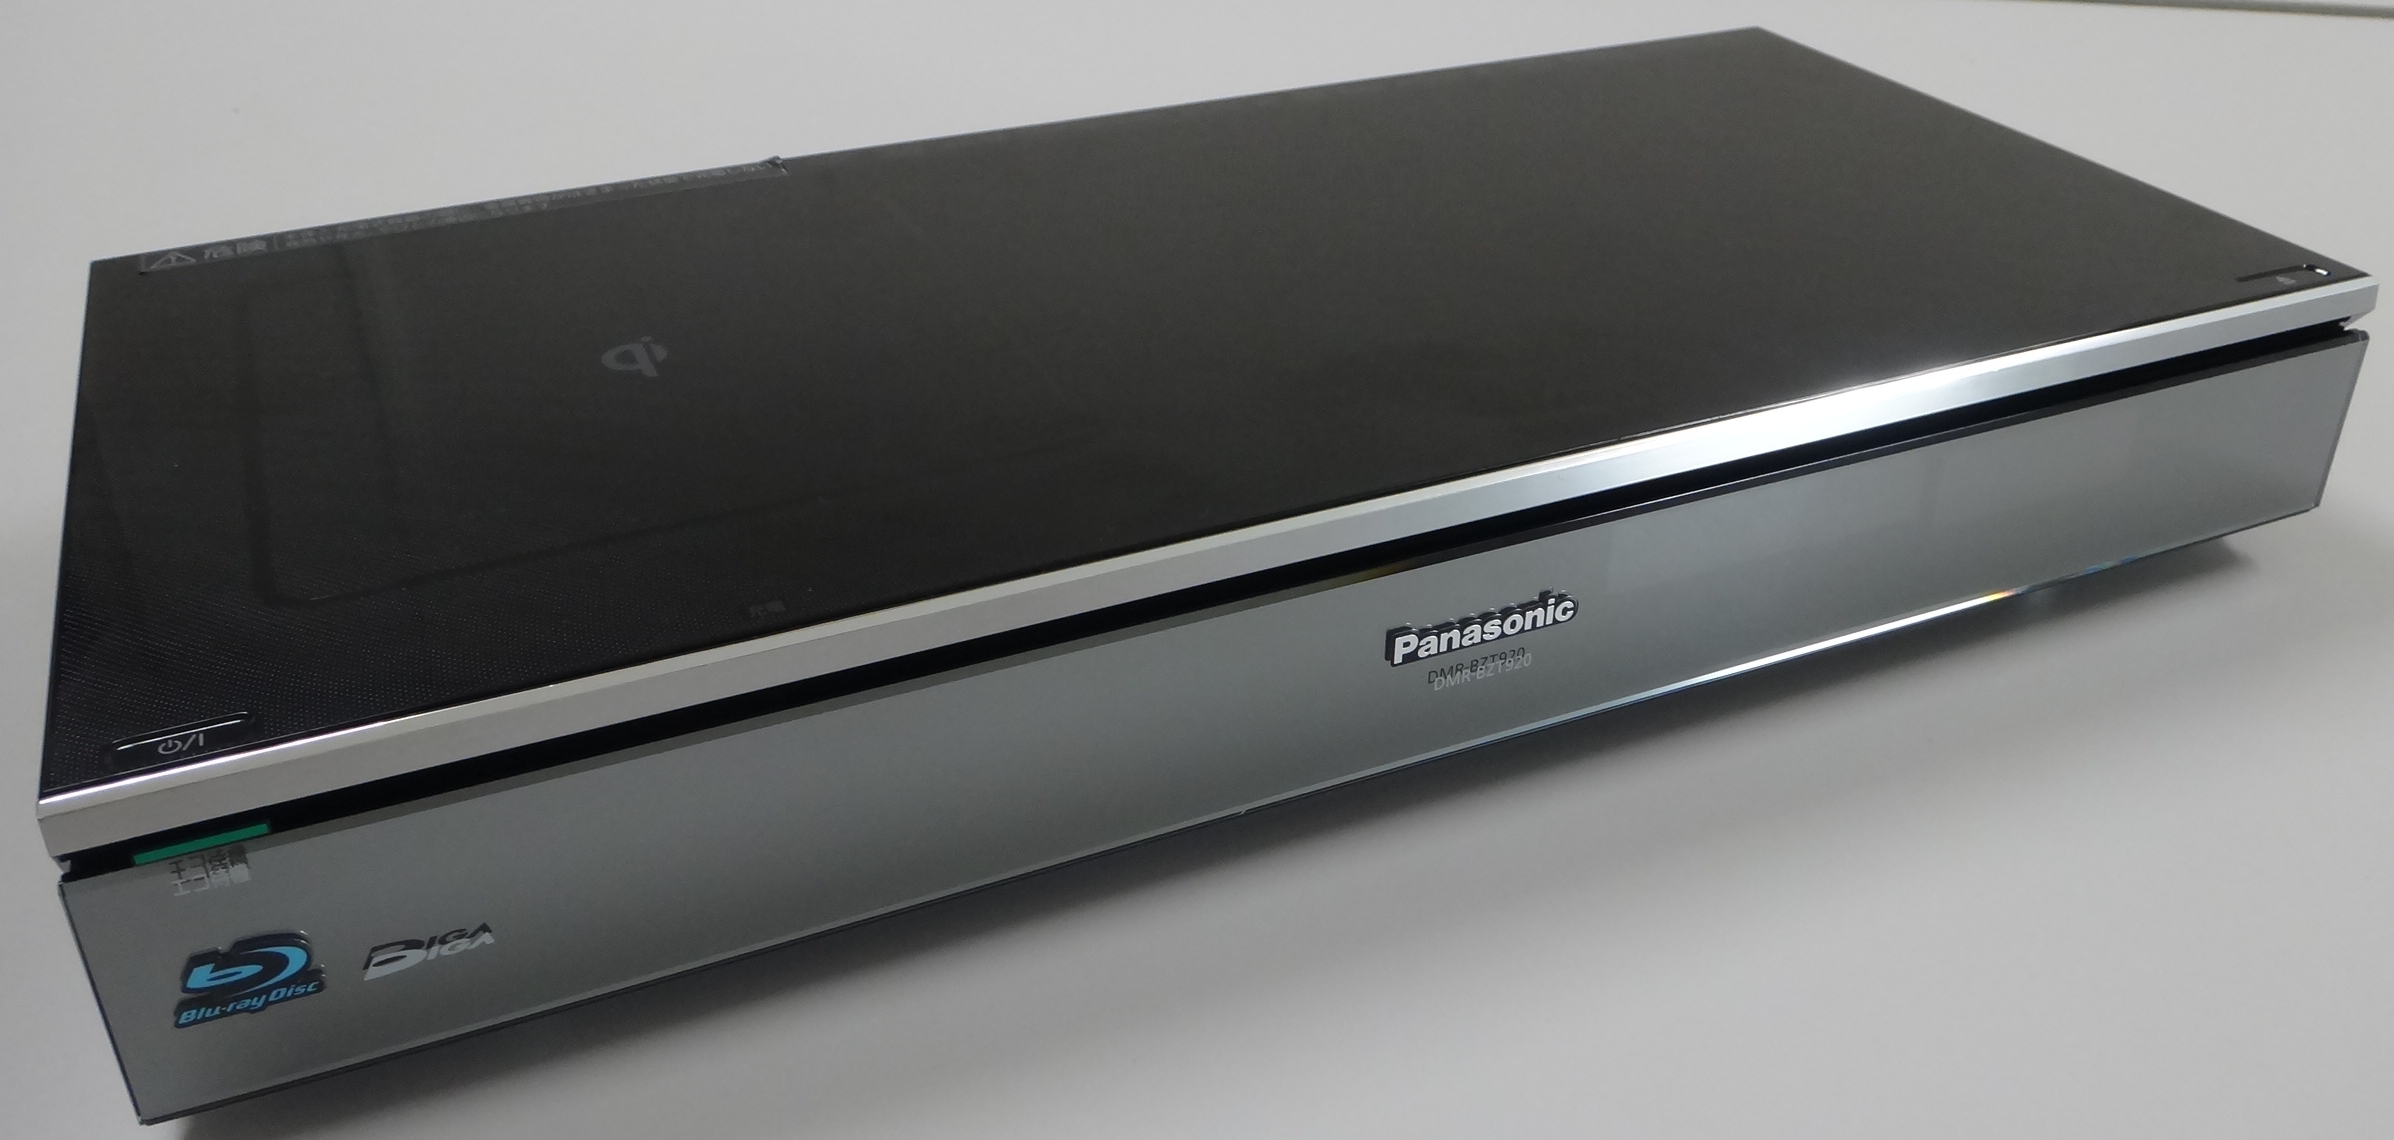 BLU-RAY DISC RECORDER